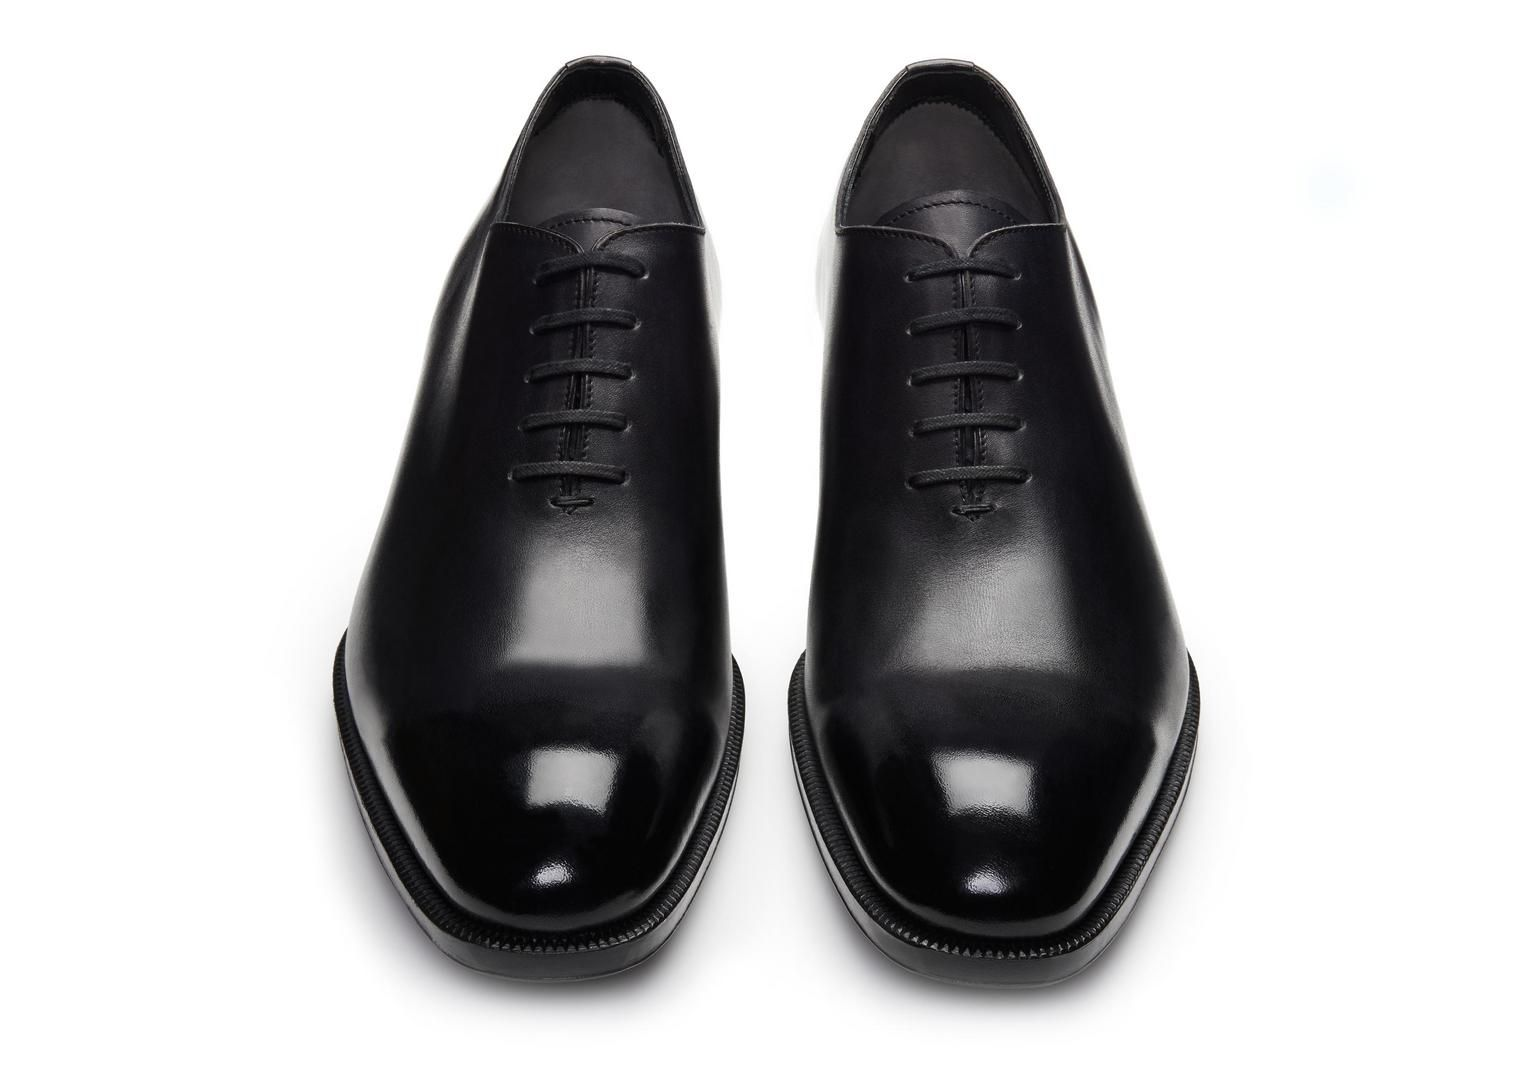 58cda2c8 Tom Ford.Tom Ford Men's Shoes. EDWARD LEATHER LACE-UP ...